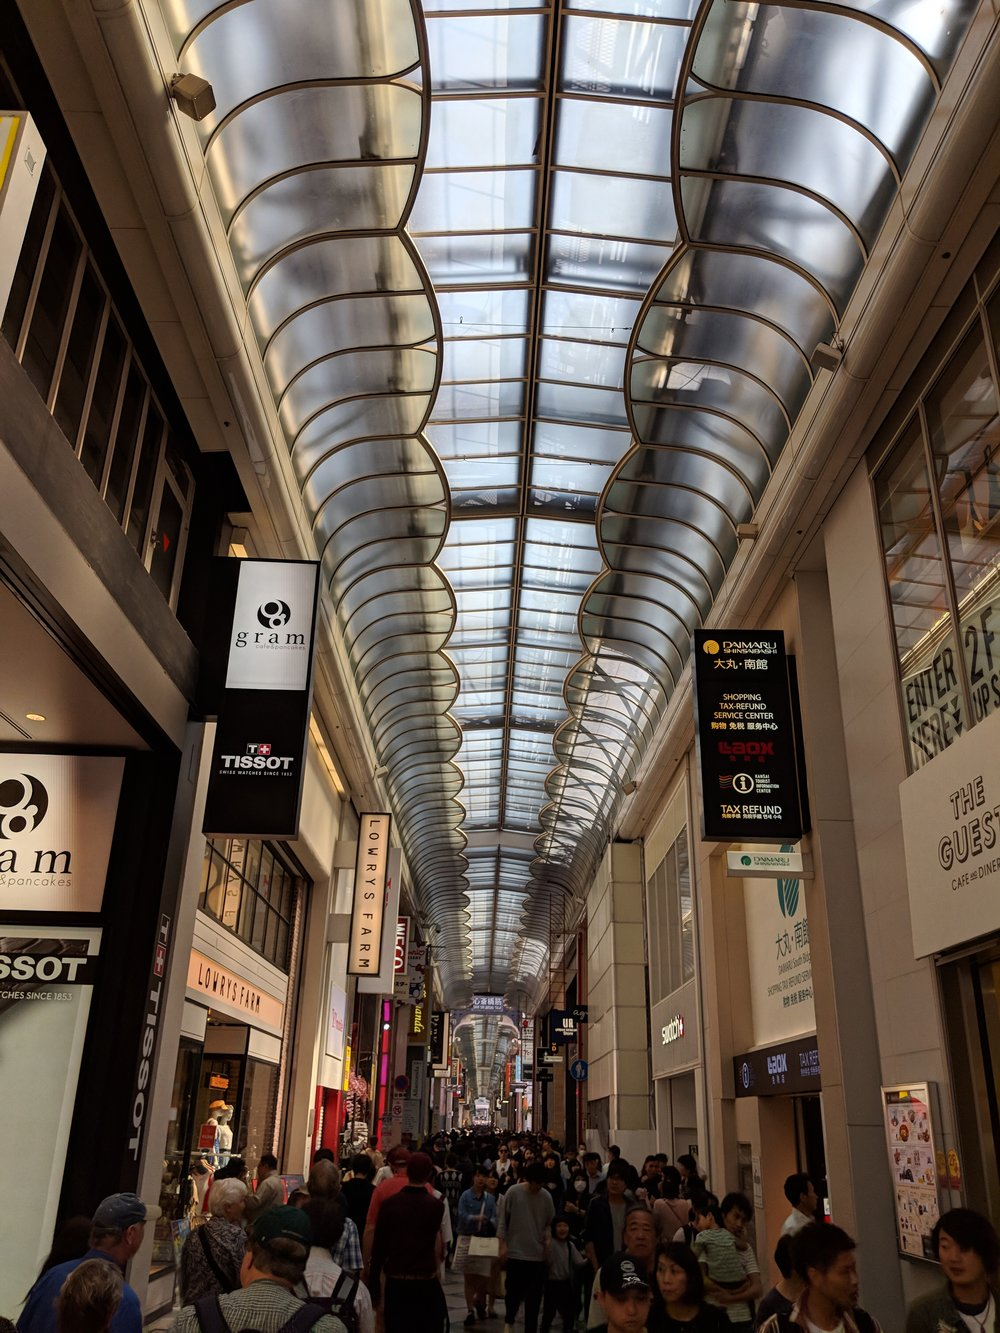 Shinsaibashi shopping district in Osaka